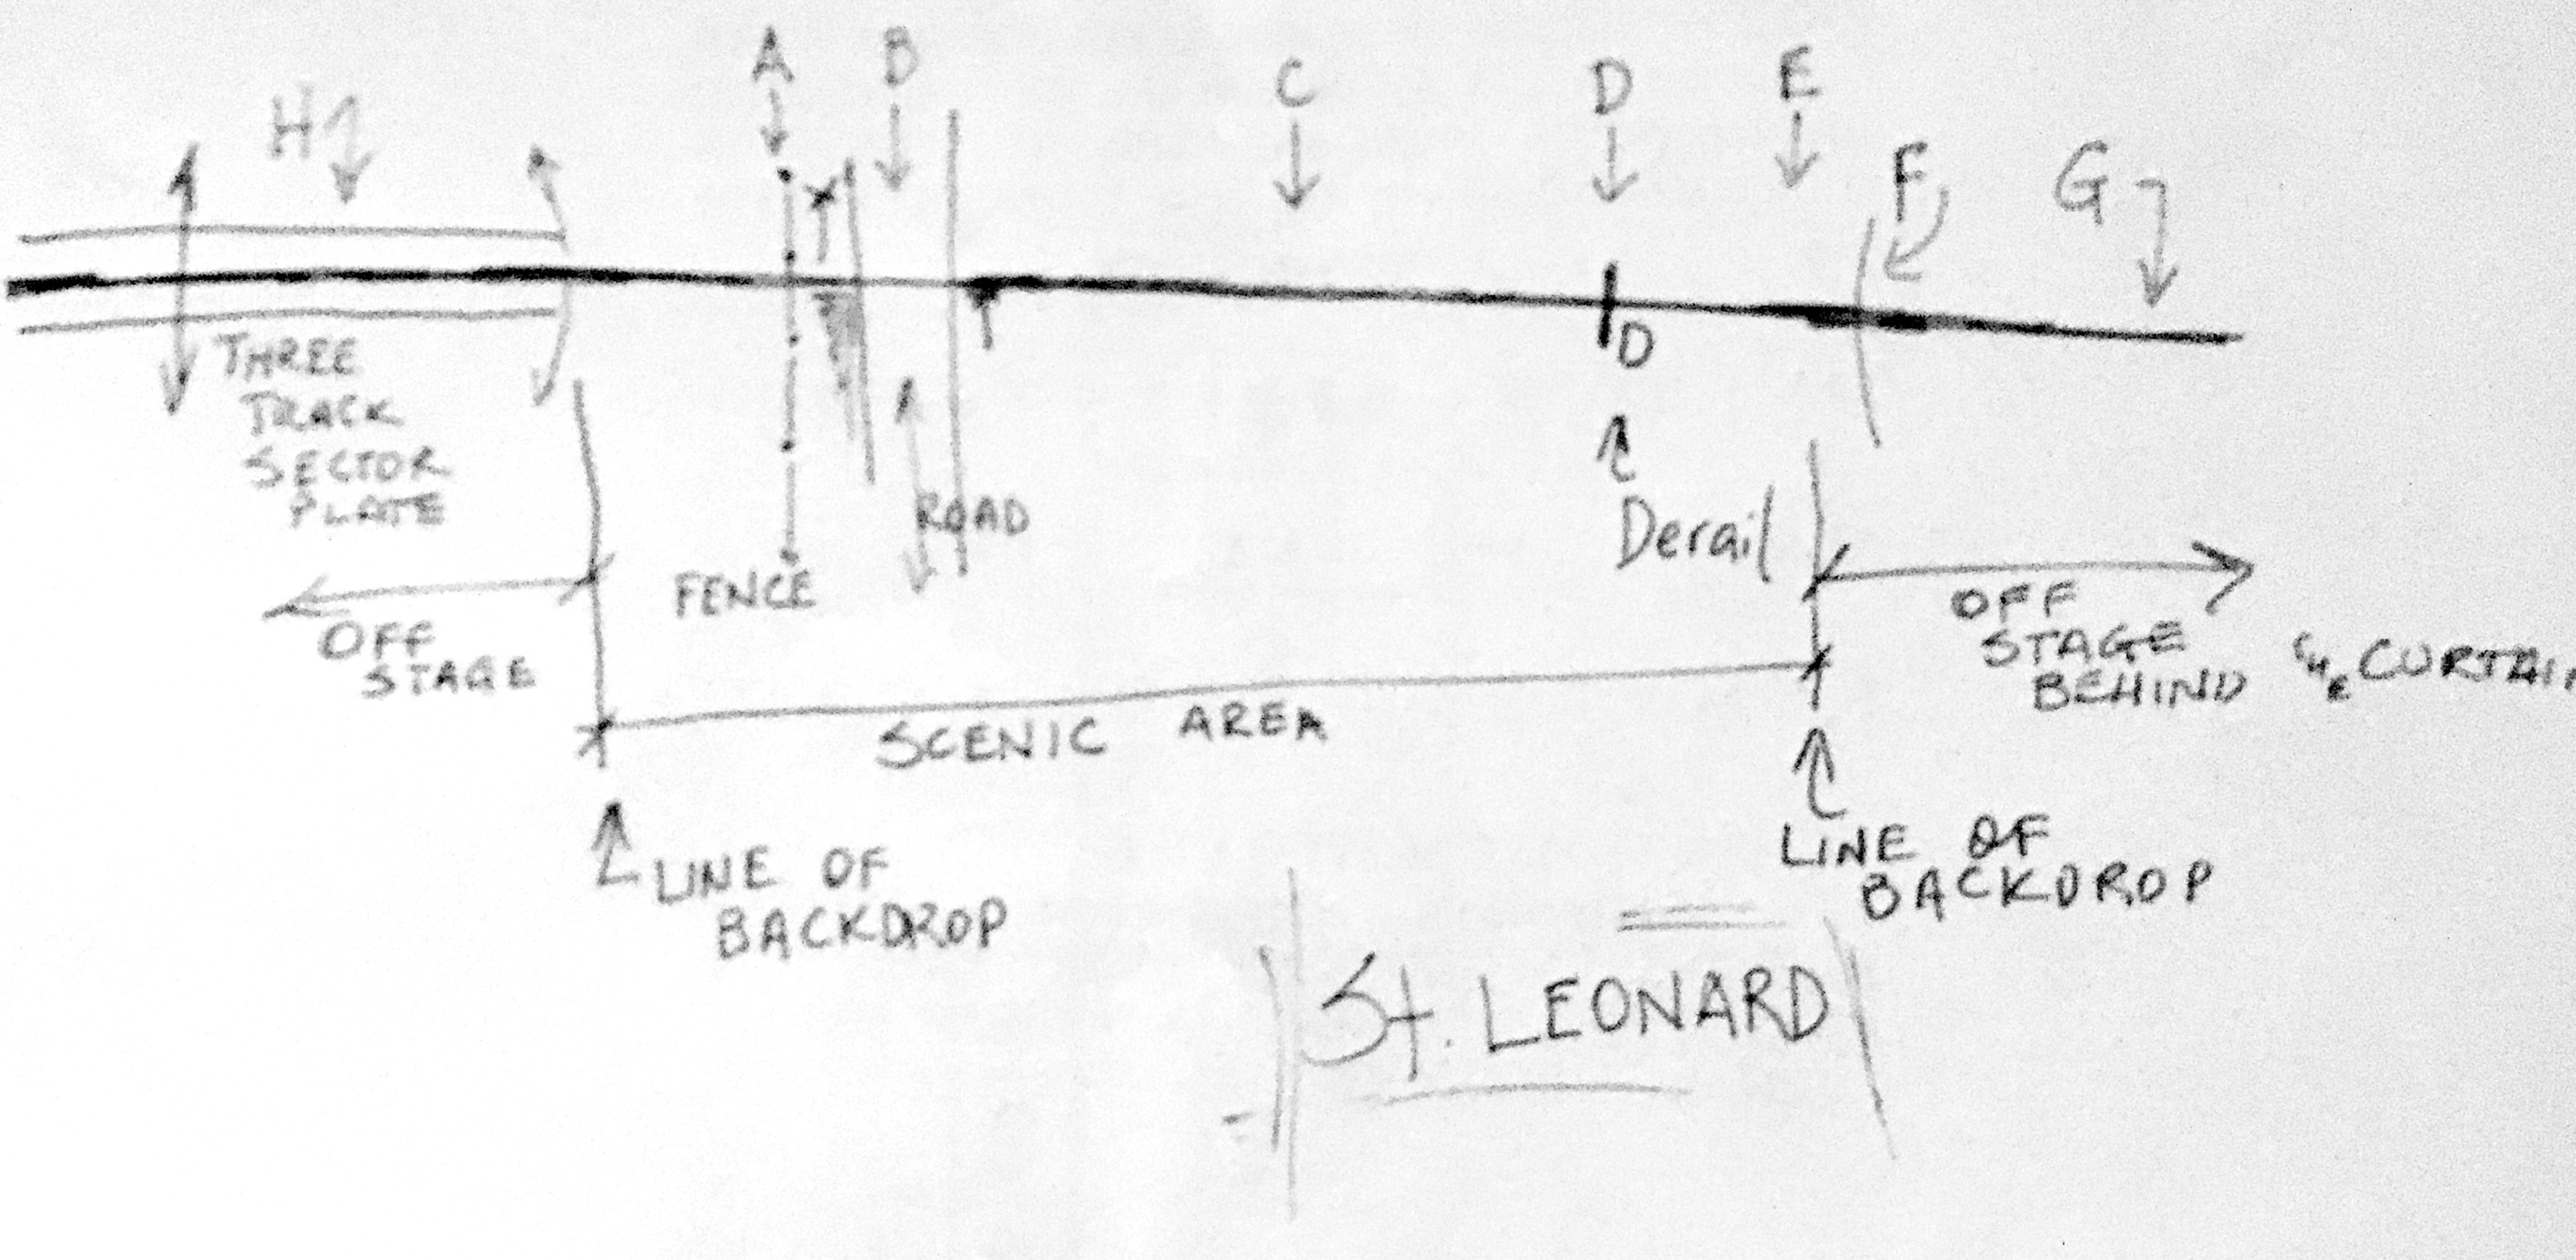 St Leonard layoutplan1